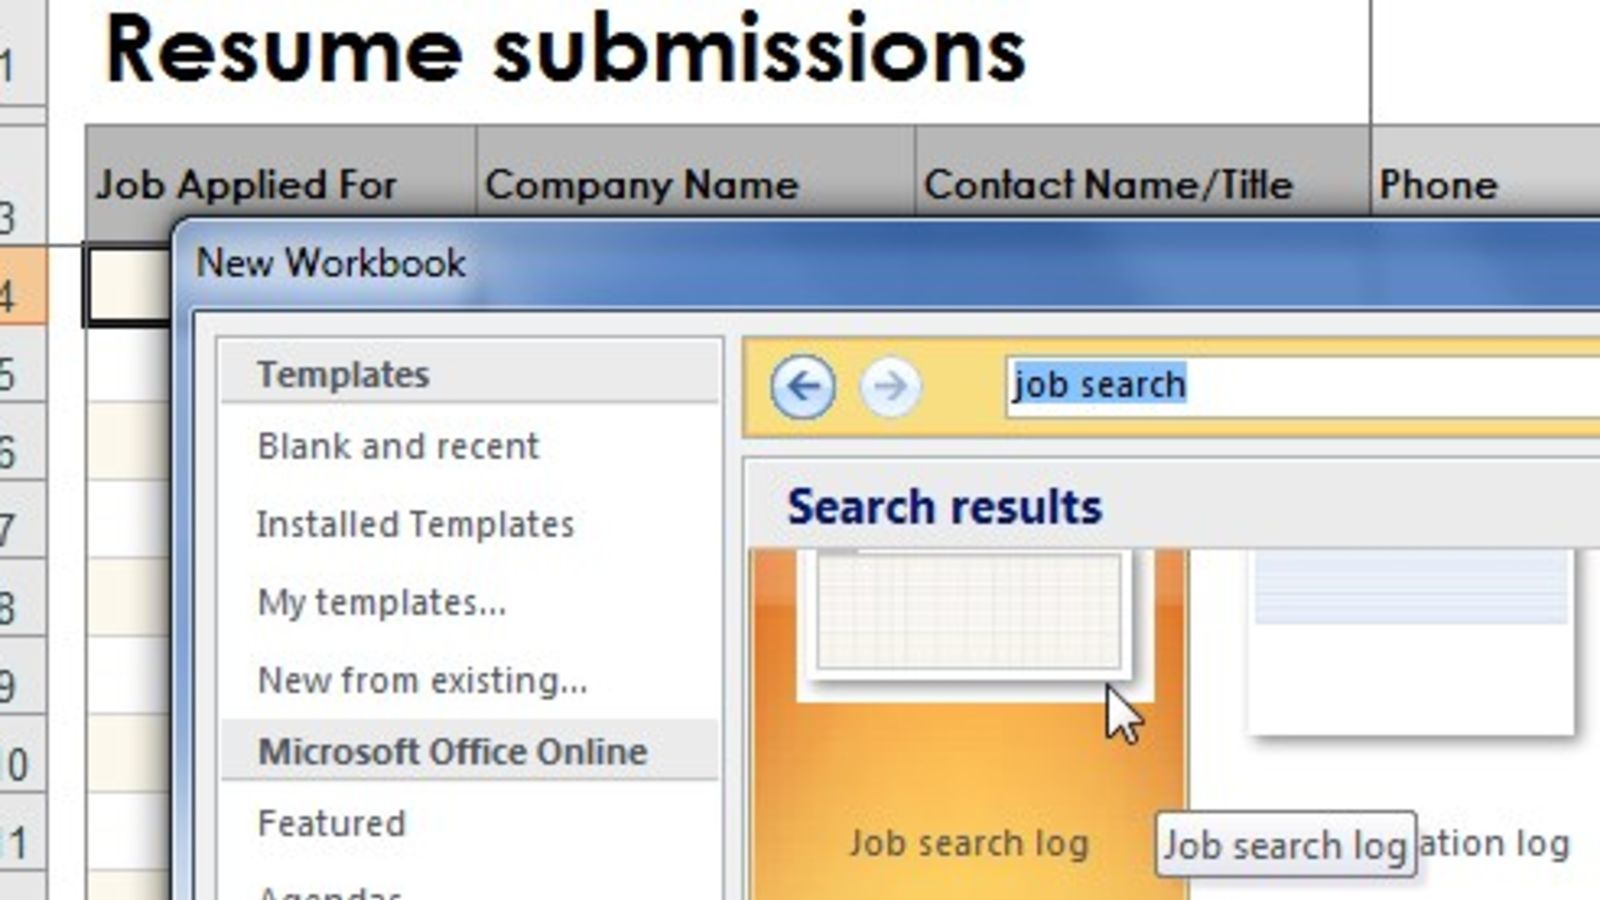 Job Application Tracker Spreadsheet With Regard To Create A Log To Keep Track Of Your Job Search Job Application Tracker Spreadsheet Google Spreadshee Google Spreadshee job search tracker spreadsheet